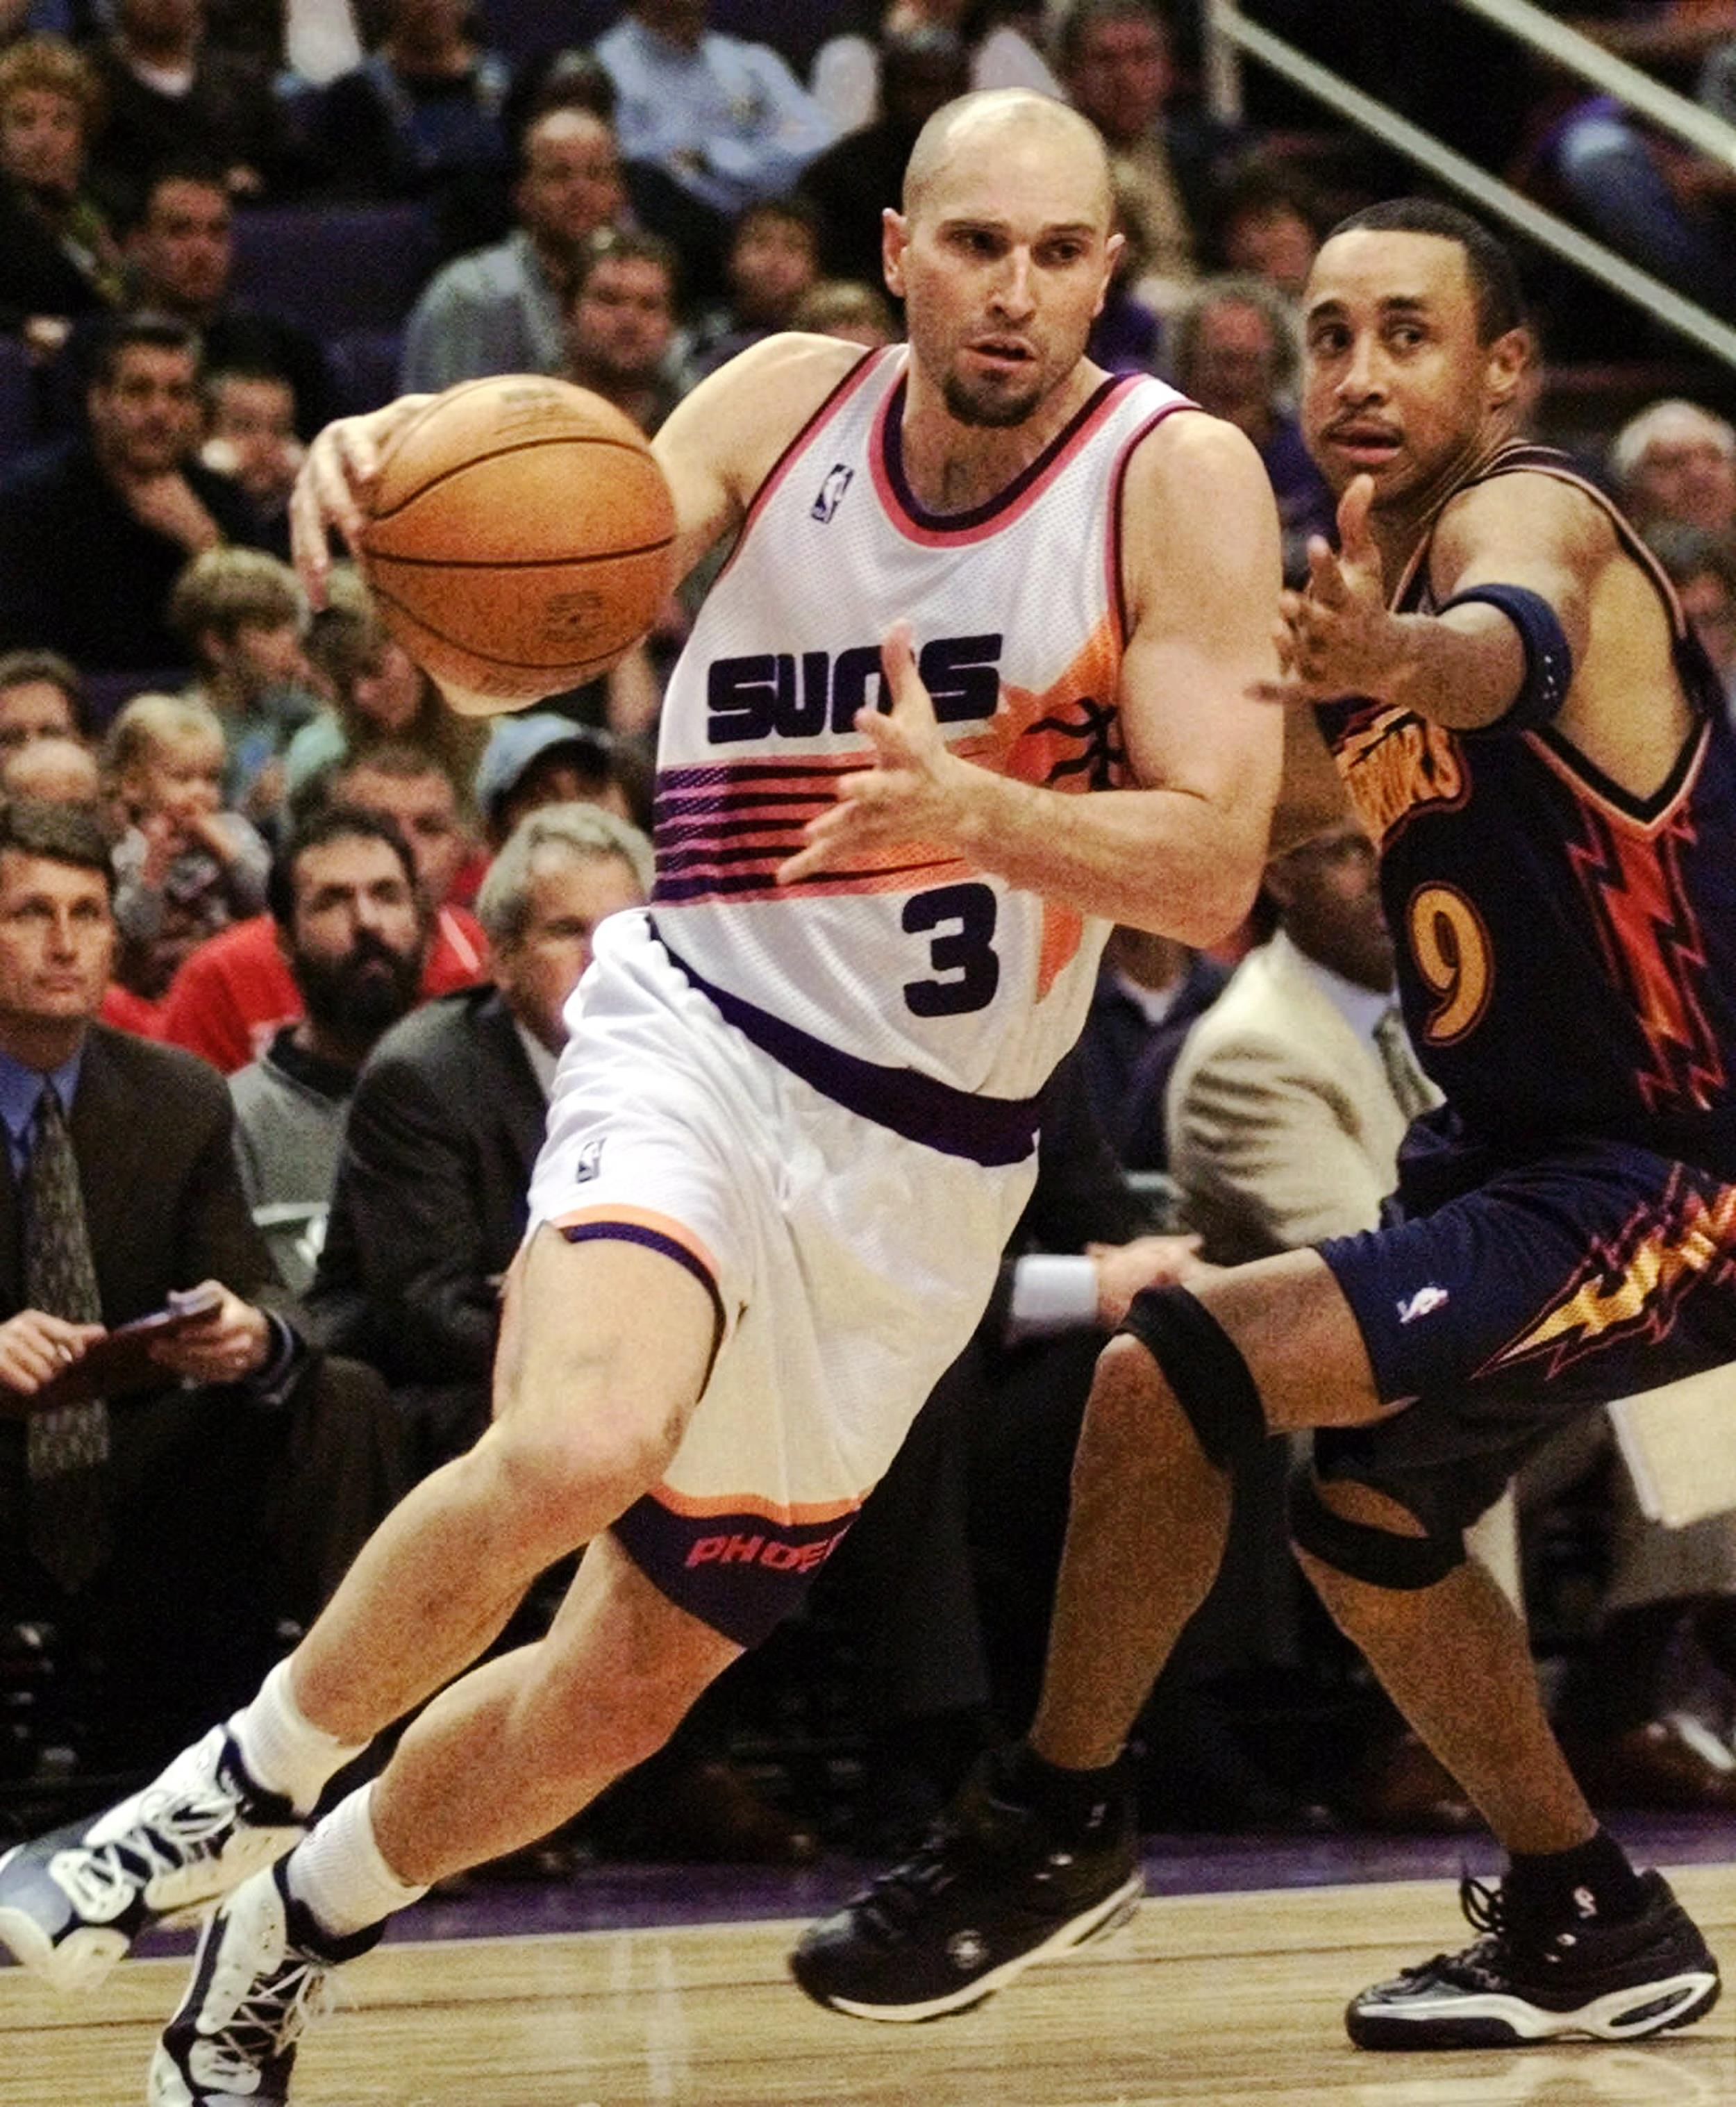 Former Suns Player Rex Chapman Accused of $14 000 Apple Store